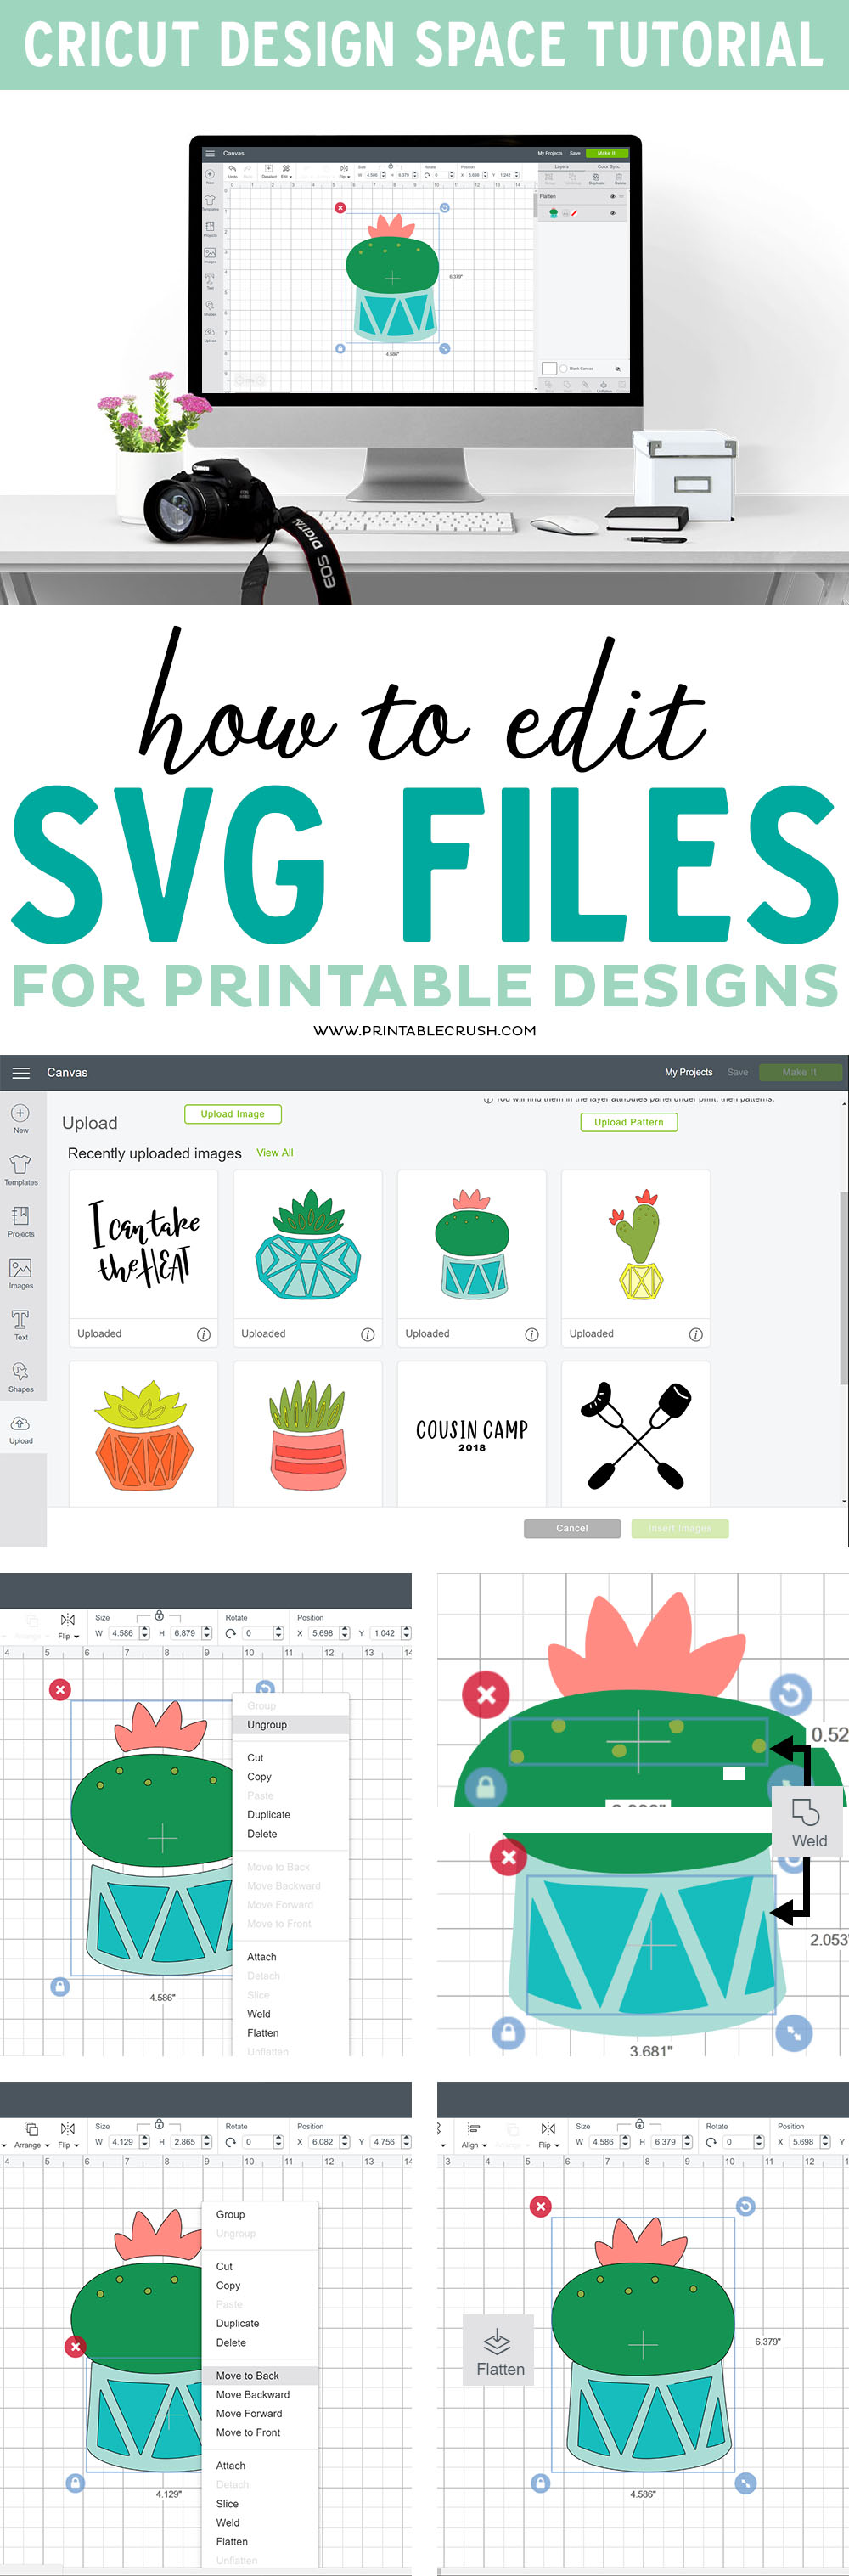 Turn any SVG File into a printable with this tutorial on How to Edit SVG Files for Printables in Cricut Design Space. #cricutmade #cricutdesignspace #cricuttutorial